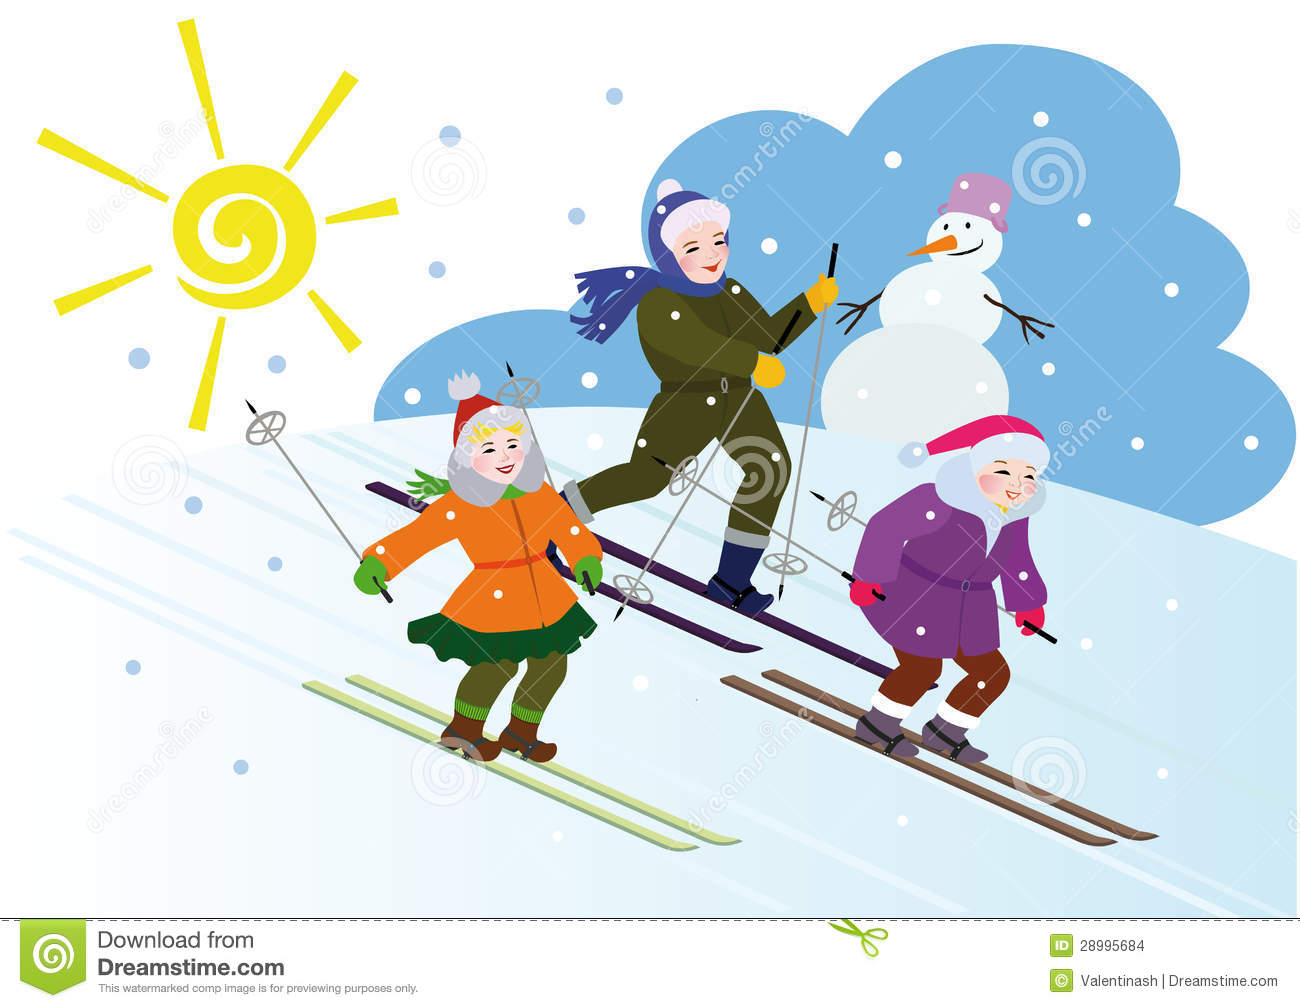 Three Children Ski From The Hill Against The Snowman Falling Snow And